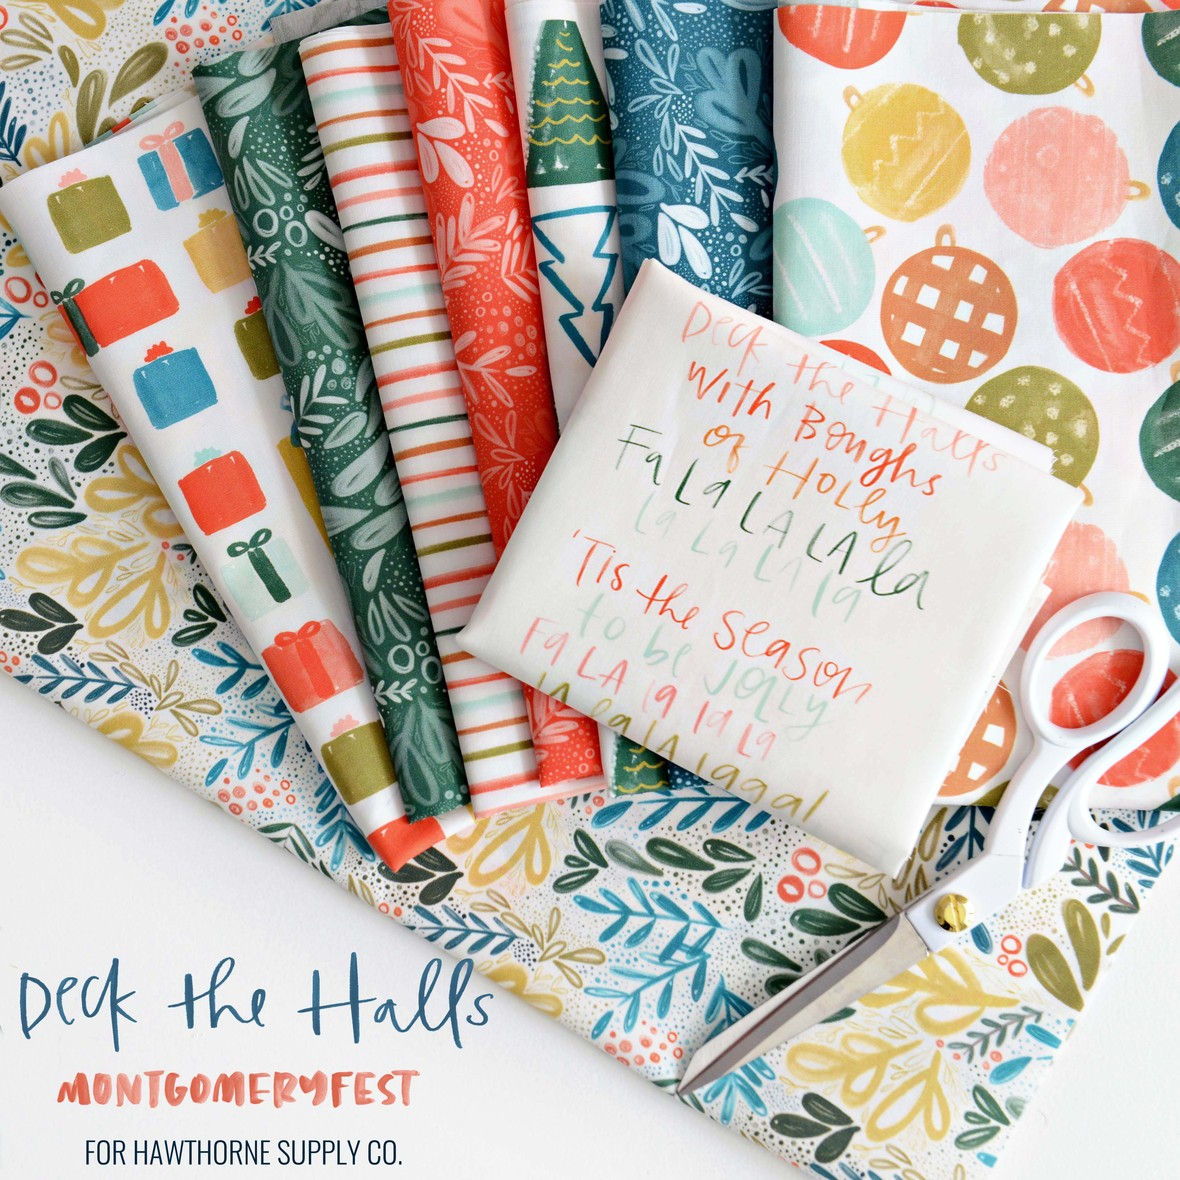 Deck the Halls Fabric Poster MontgomeryFest for Hawthorne Supply Co